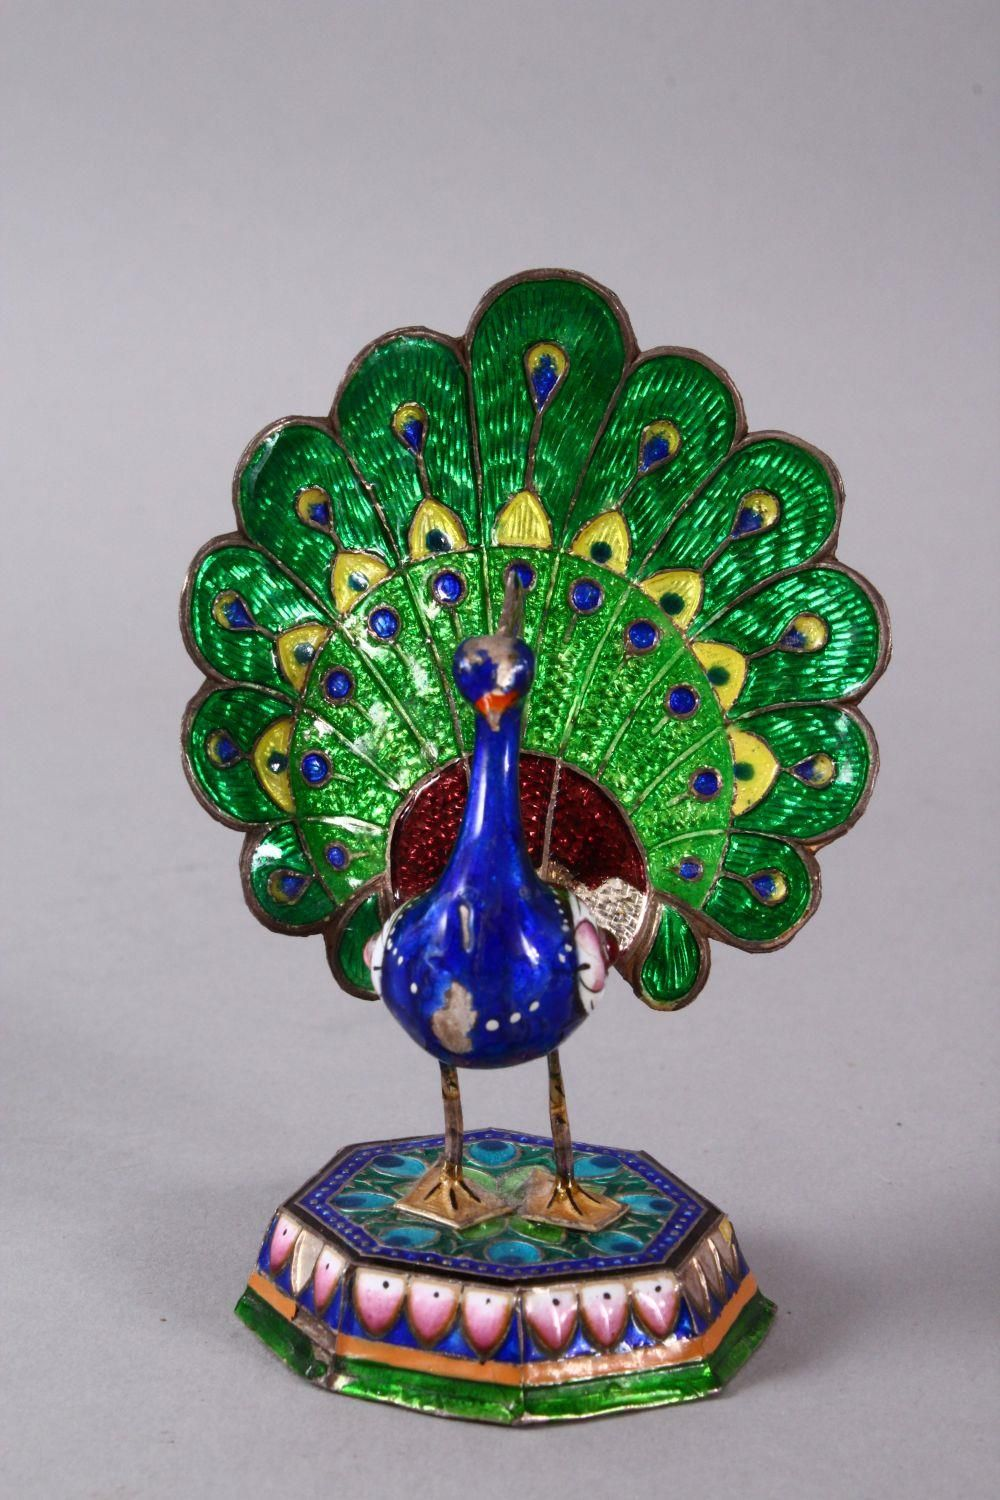 TWO 19TH / 20TH CENTURY INDIAN ENAMEL BIRD FIGURES, one of a peacock, the other of a bird upon - Image 2 of 8